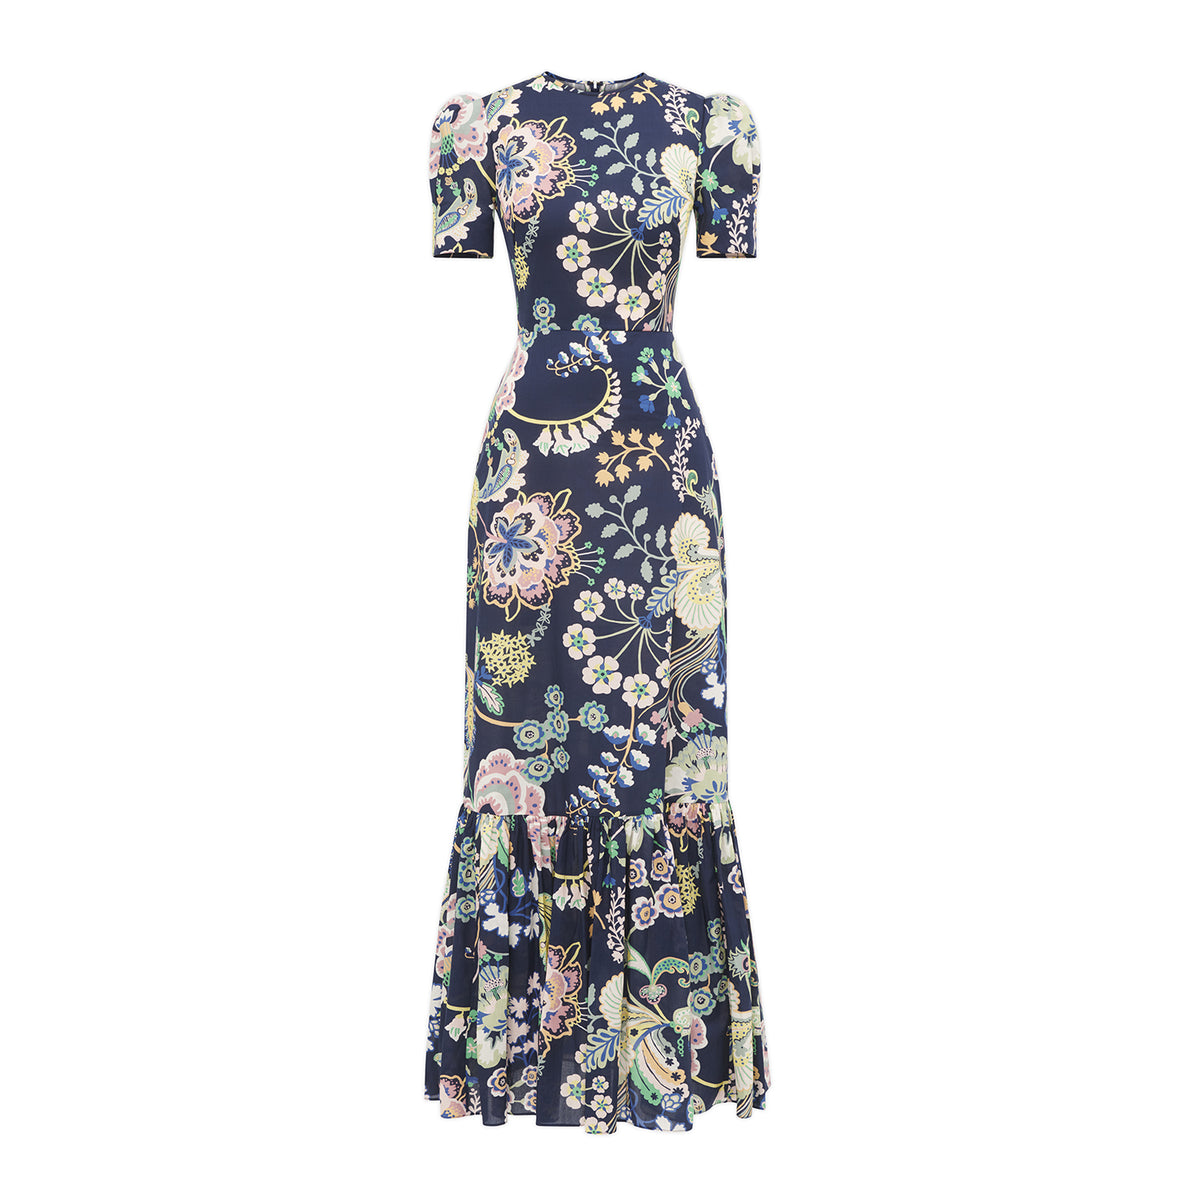 THE JUNO NAVY FLORAL DRESS